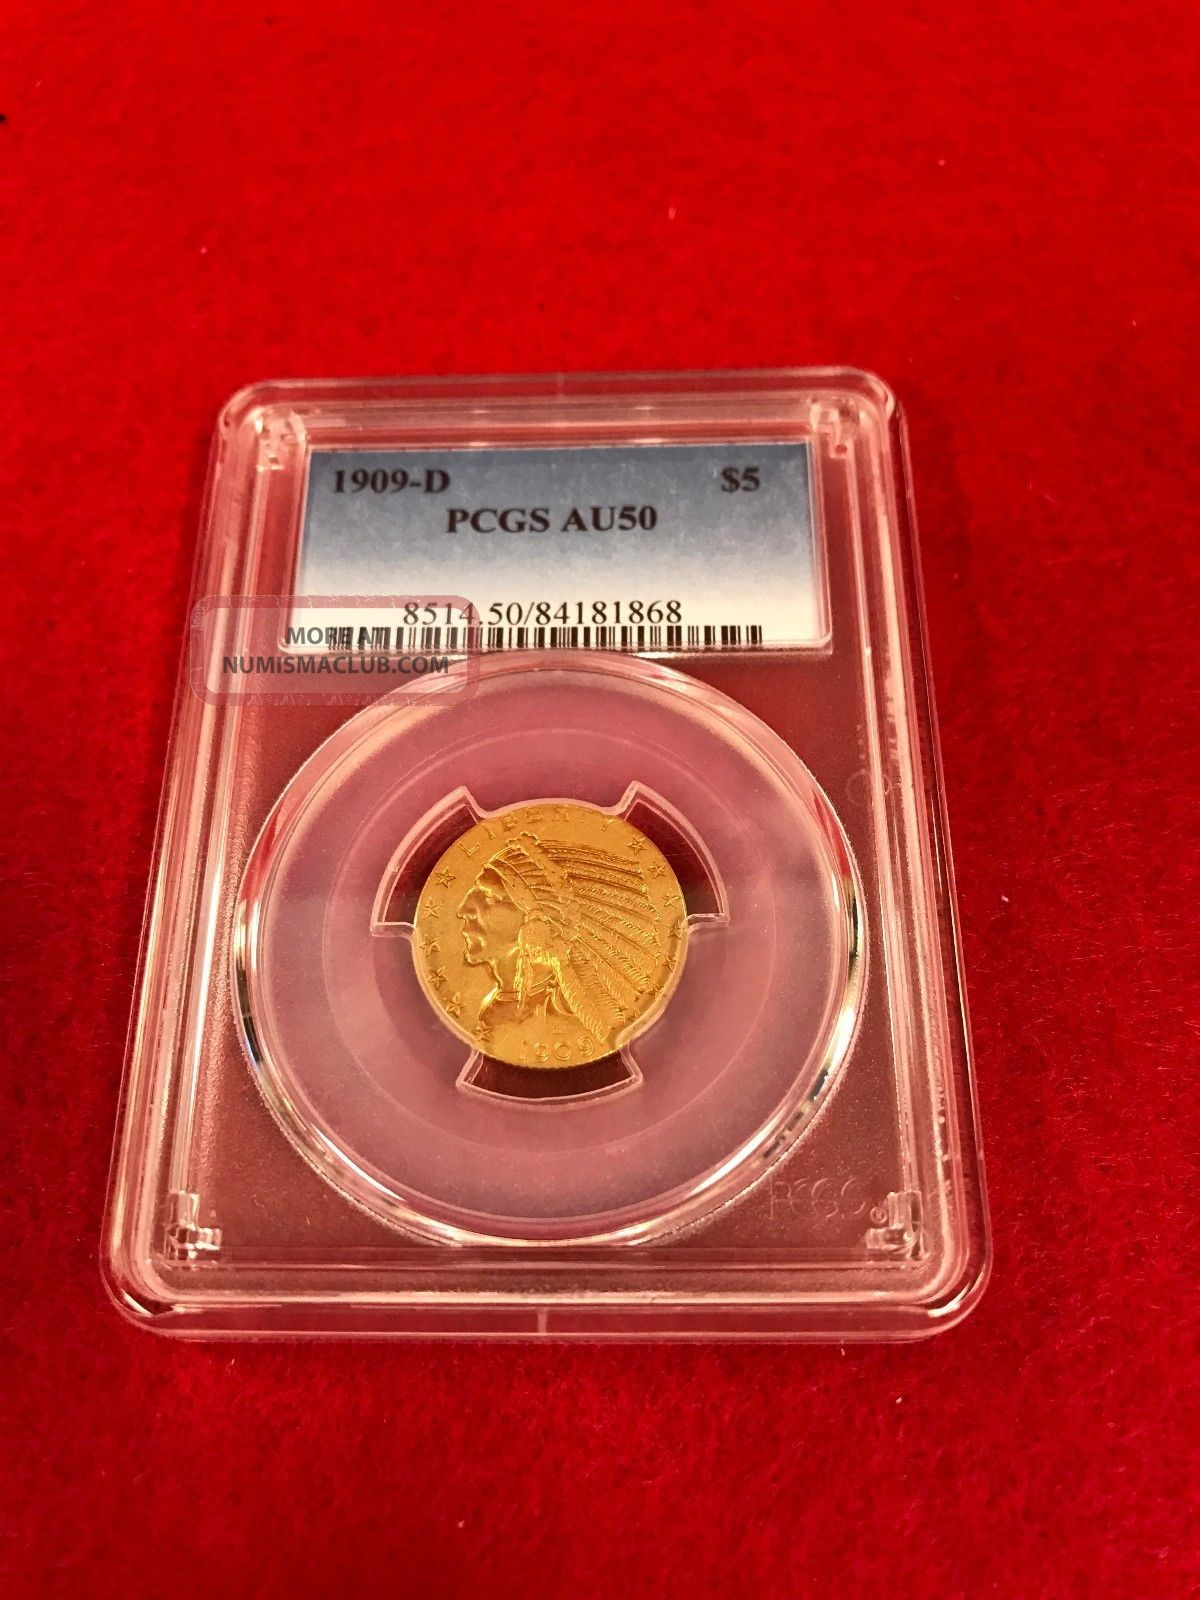 1909 - D Gold Indian Head Half Eagle $5 Coin Certified Pcgs Au50 Gold photo